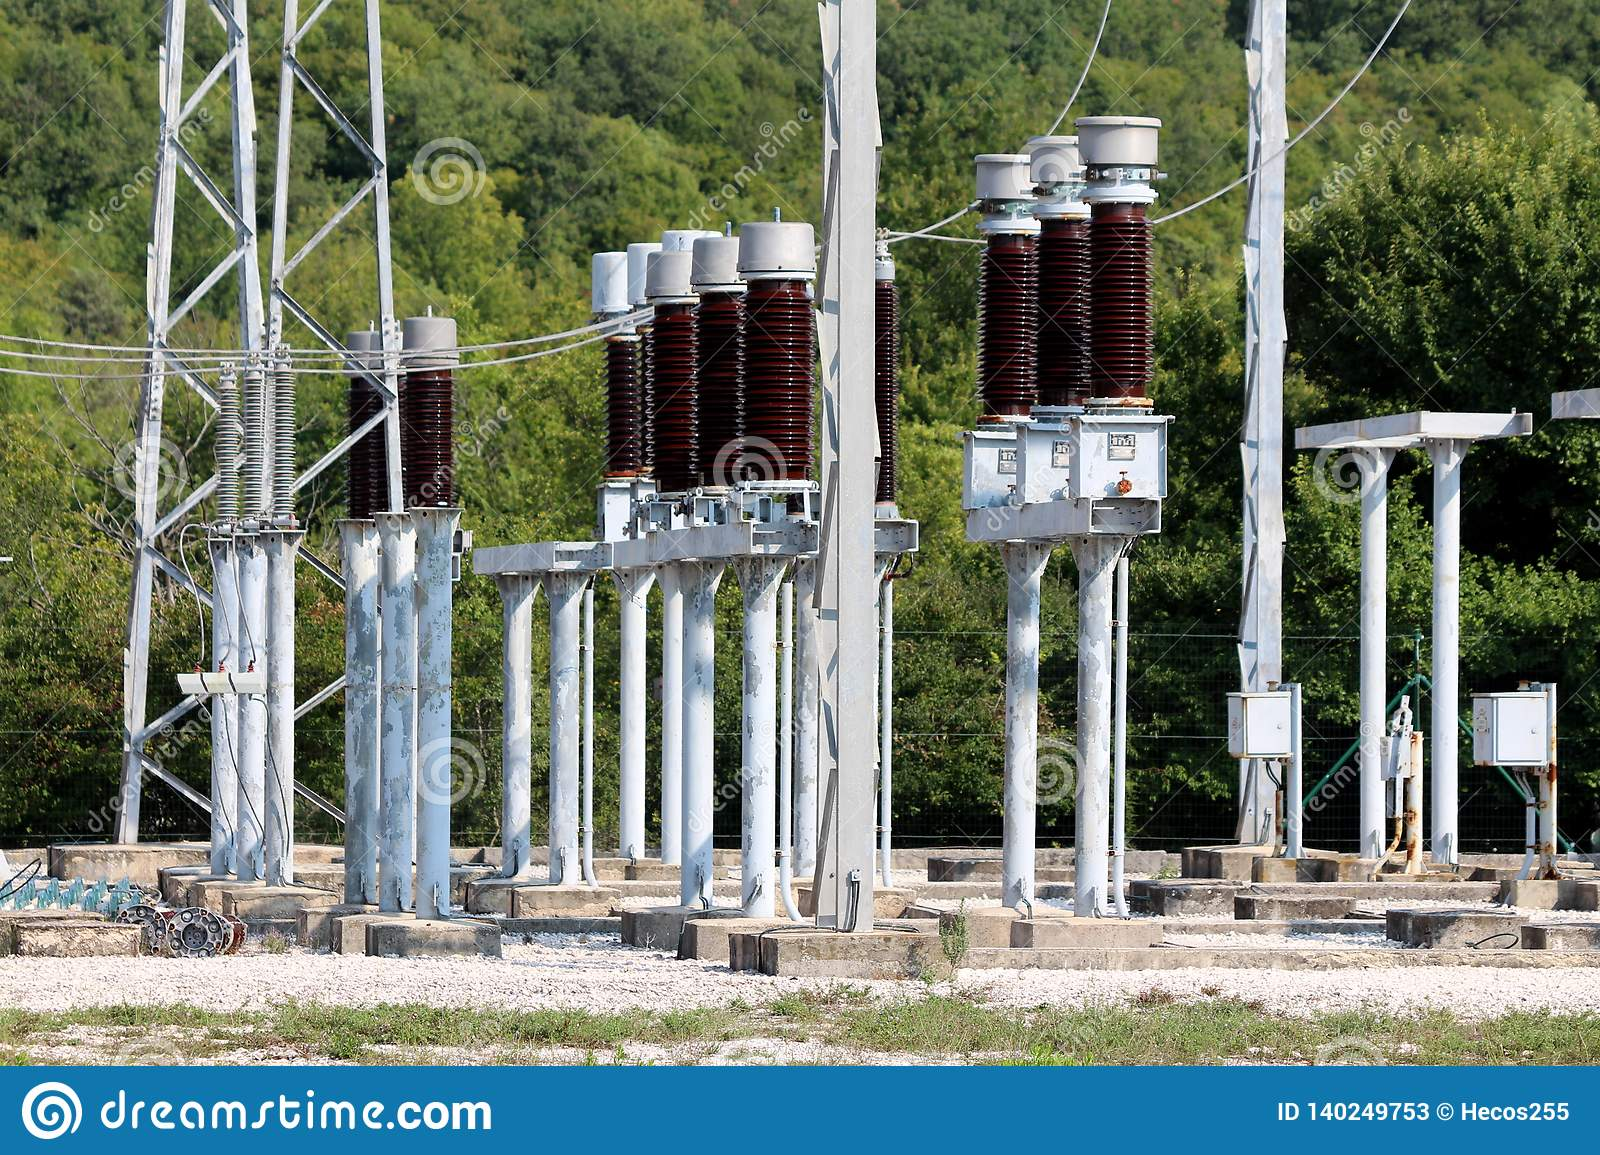 Tall dark brown ceramic insulators mounted on metal pipes and connected with electrical wires inside local power plant surrounded